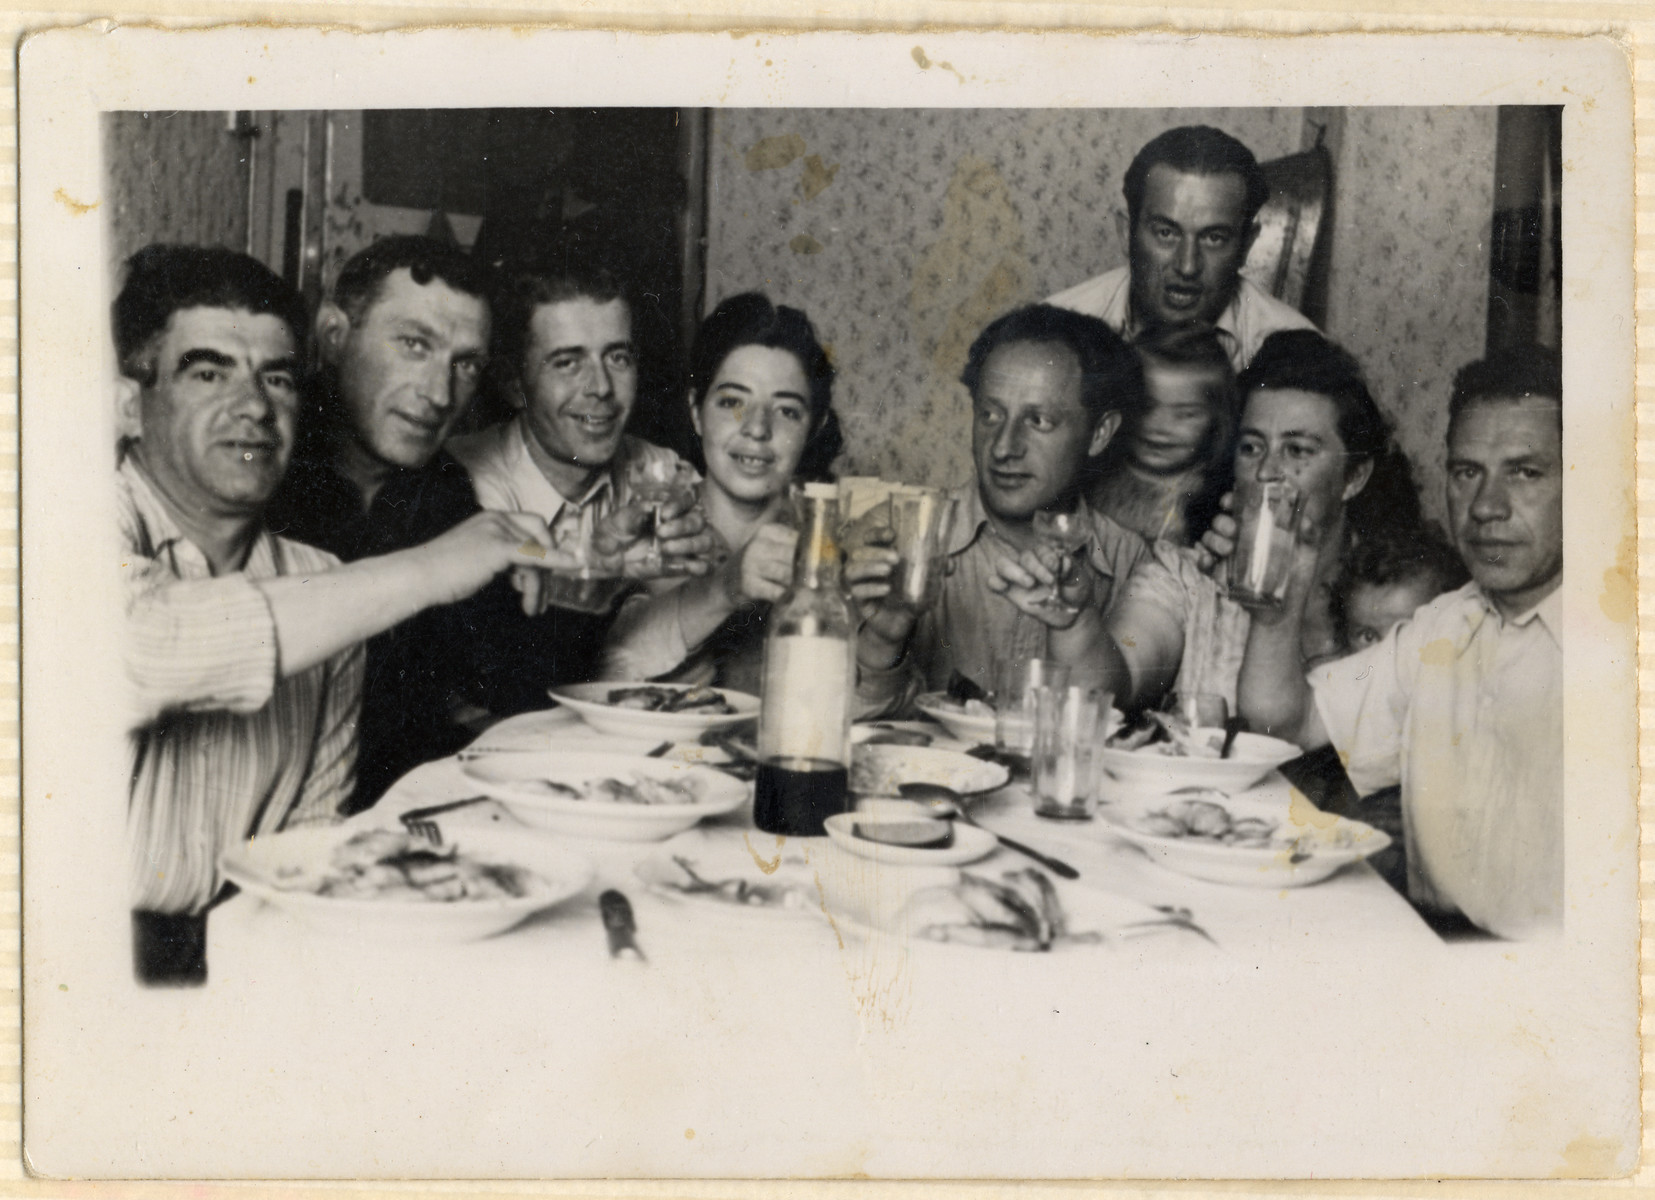 A group of friends gather around a table for a celebration in the Hofgeismar displaced persons camp.  Emil Kohl is standing in the back holding his daughter Miriam.